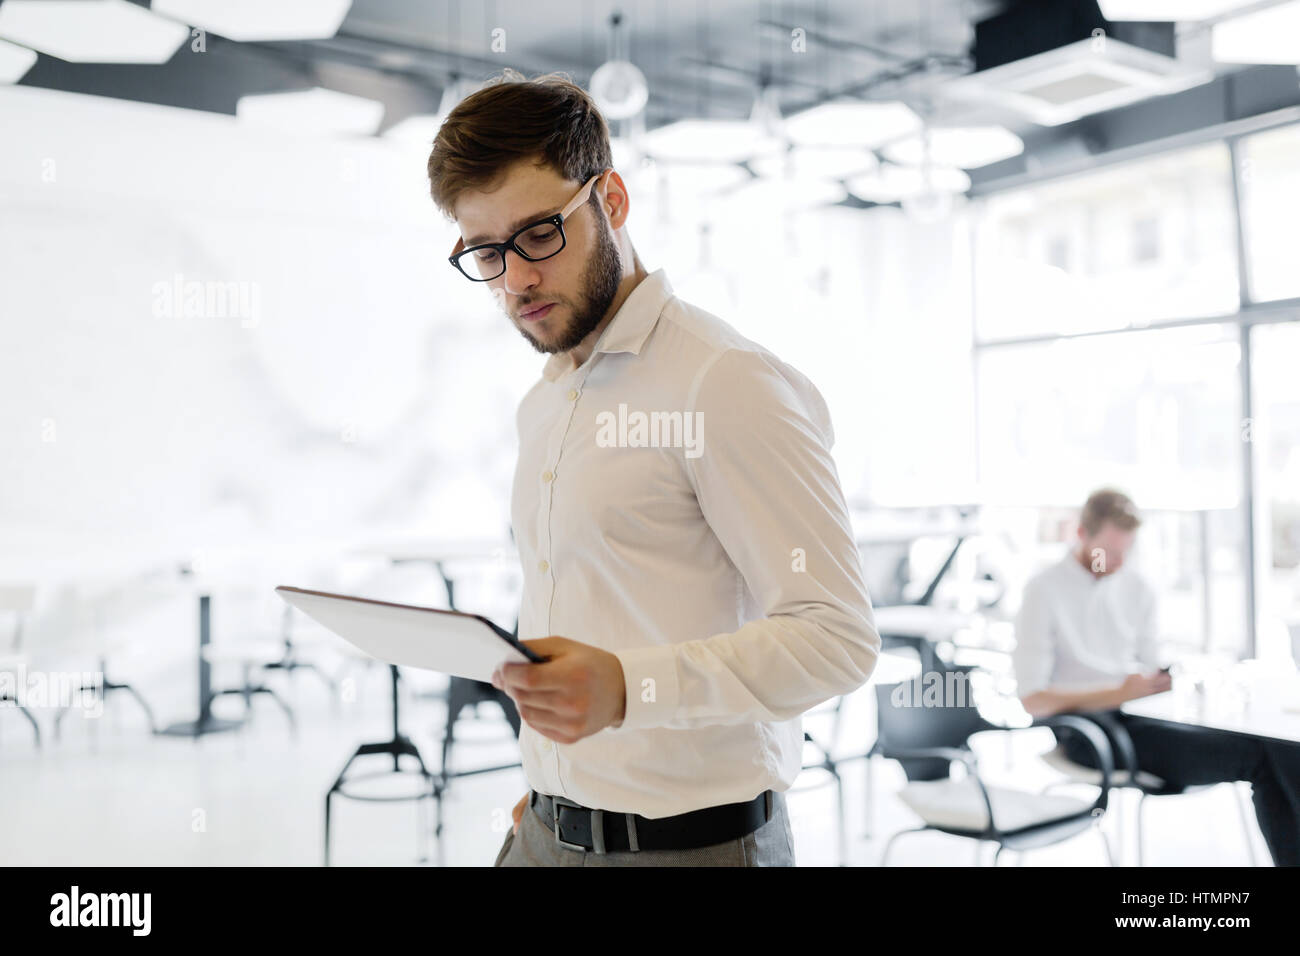 Confident businessman wearing shirt and glasses  using tablet - Stock Image